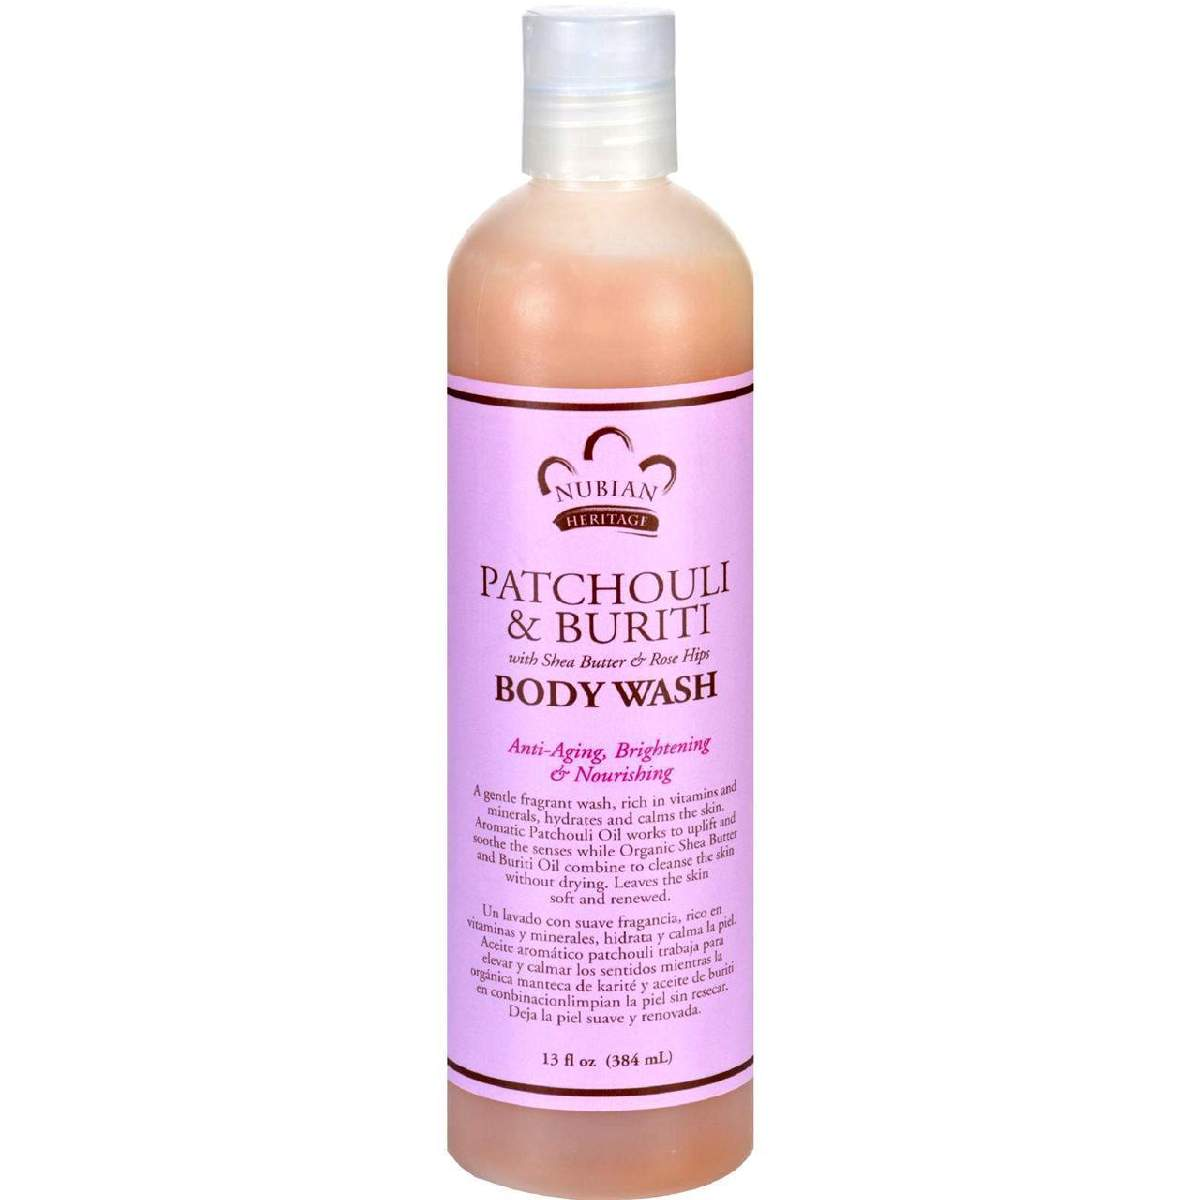 Nubian Heritage Body Wash - Patchouli And Buriti - 13 Oz